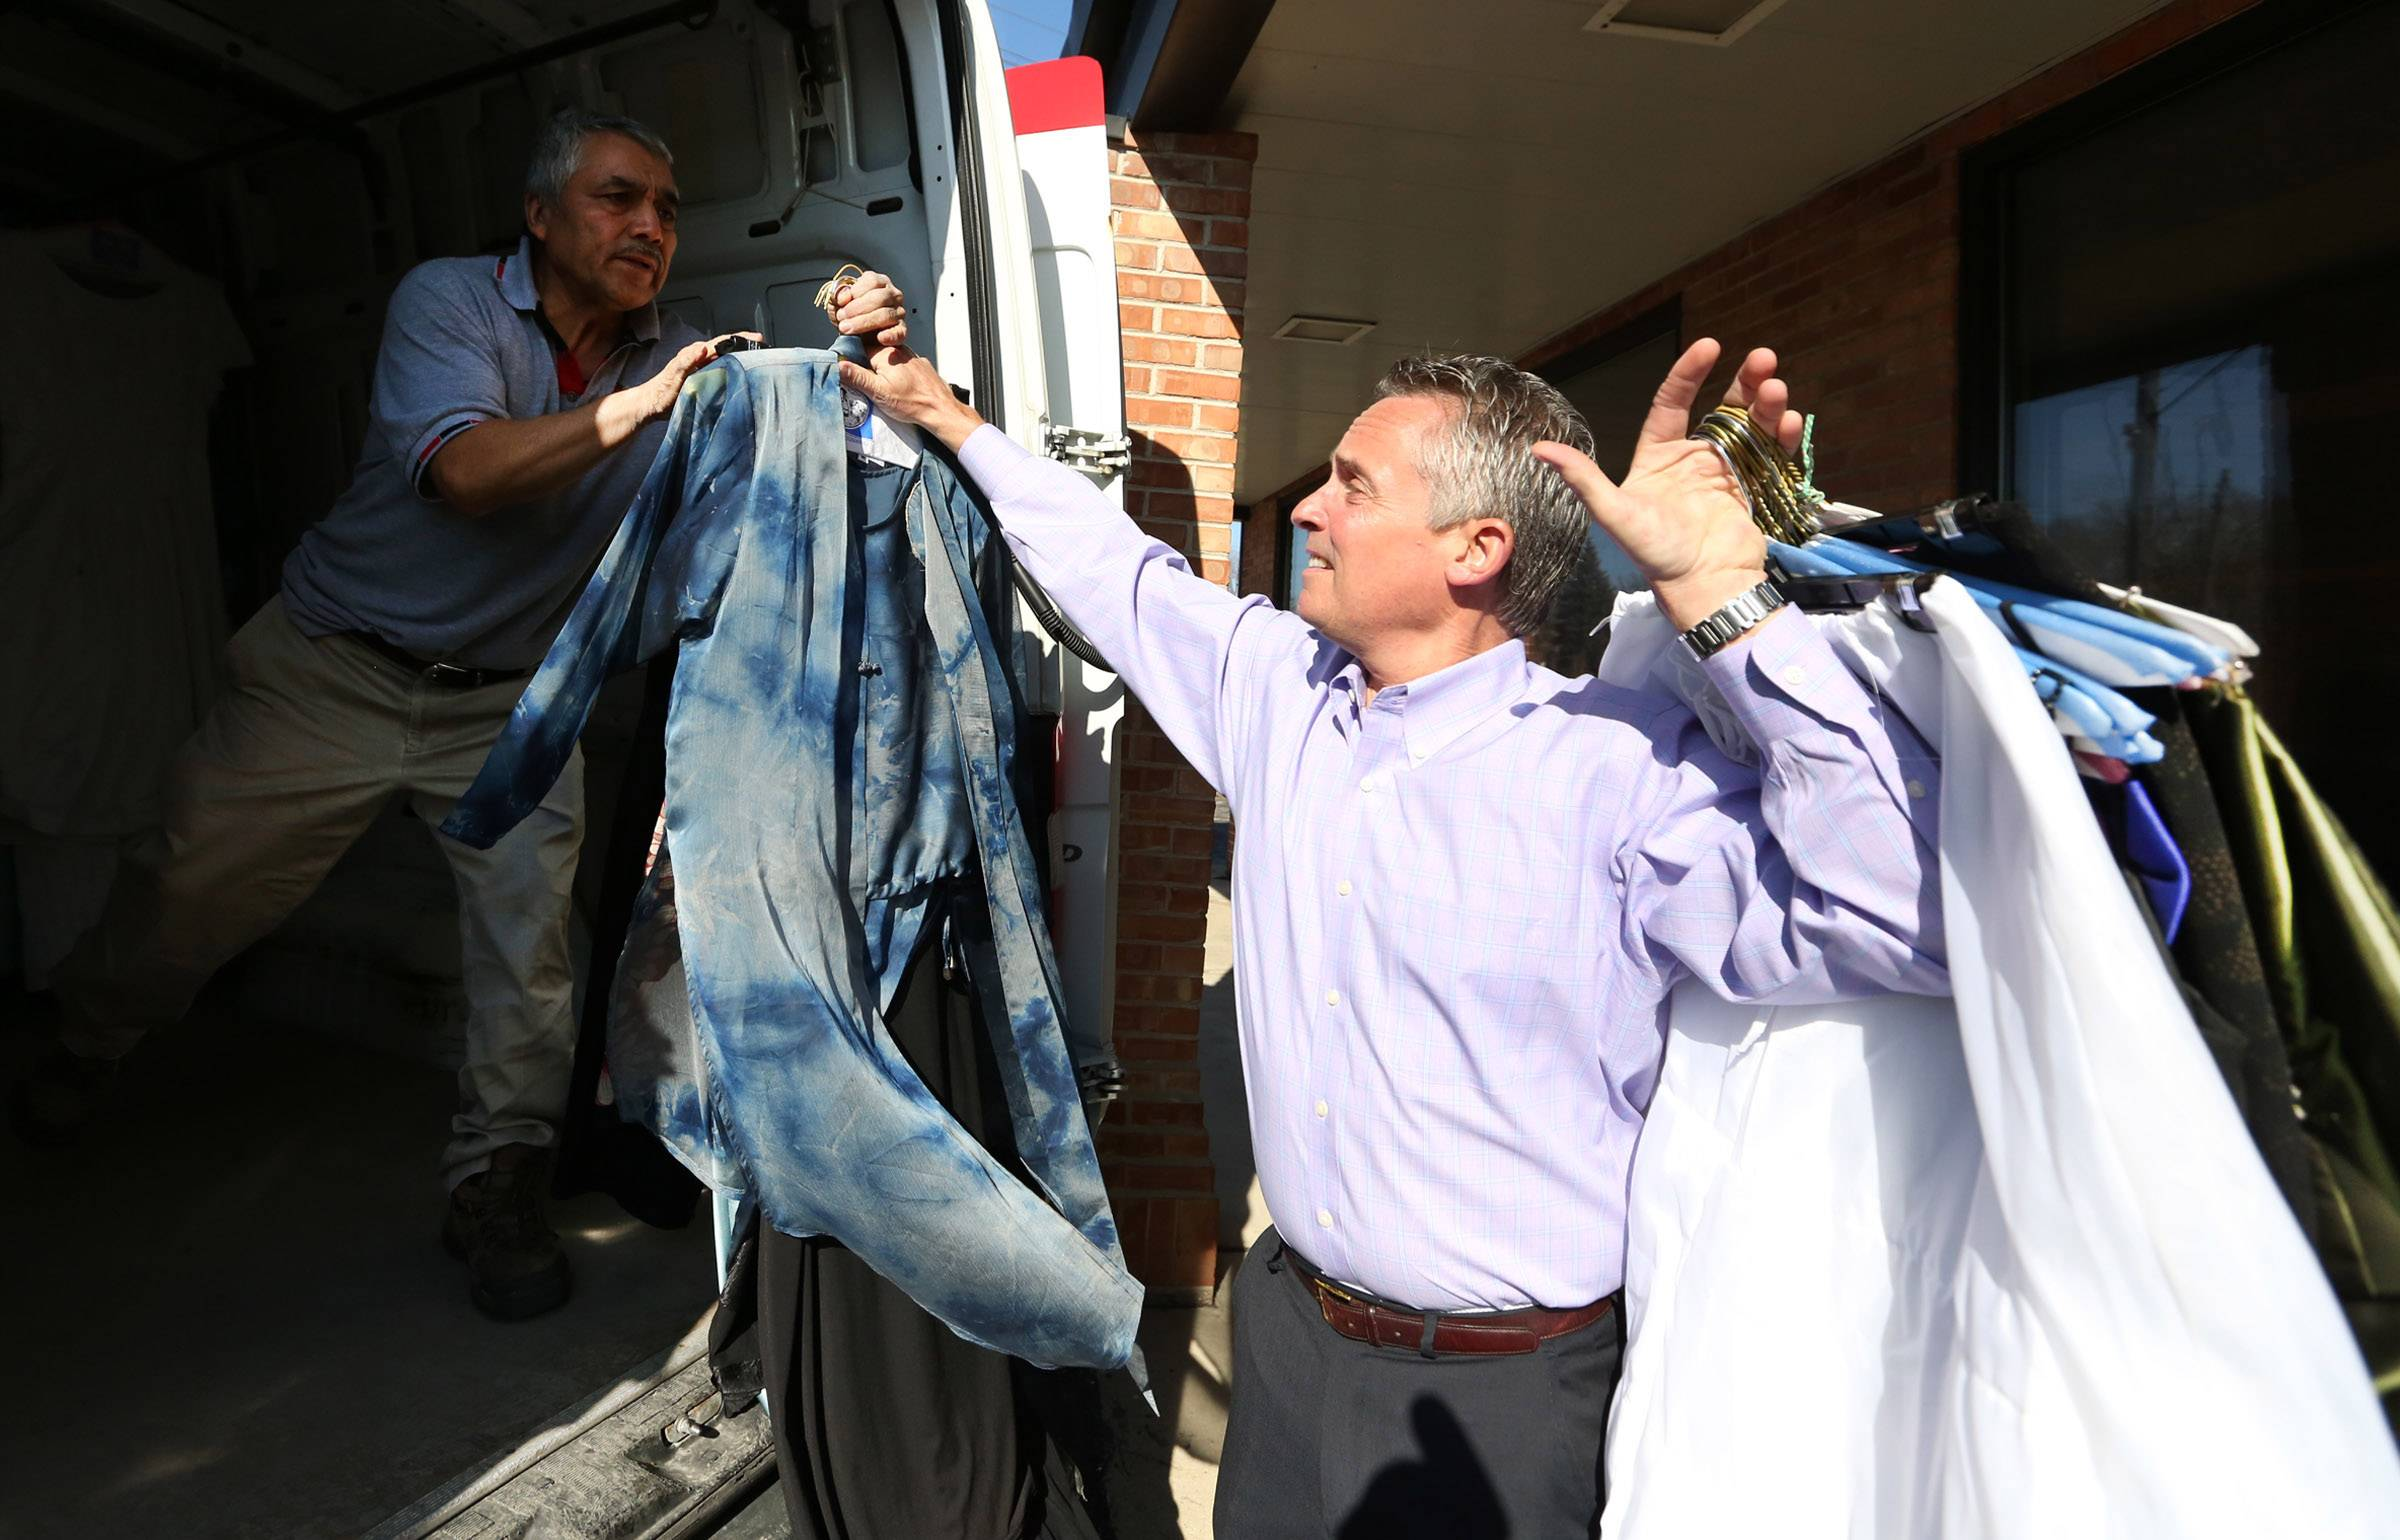 Tom Zengeler, owner of Zengeler Cleaners, hands donated prom dresses to Enrique Tovar in a van at the cleaners in Northbrook on Saturday. The dresses are being delivered to Chicago for girls from needy families as part of the Glass Slipper Project.